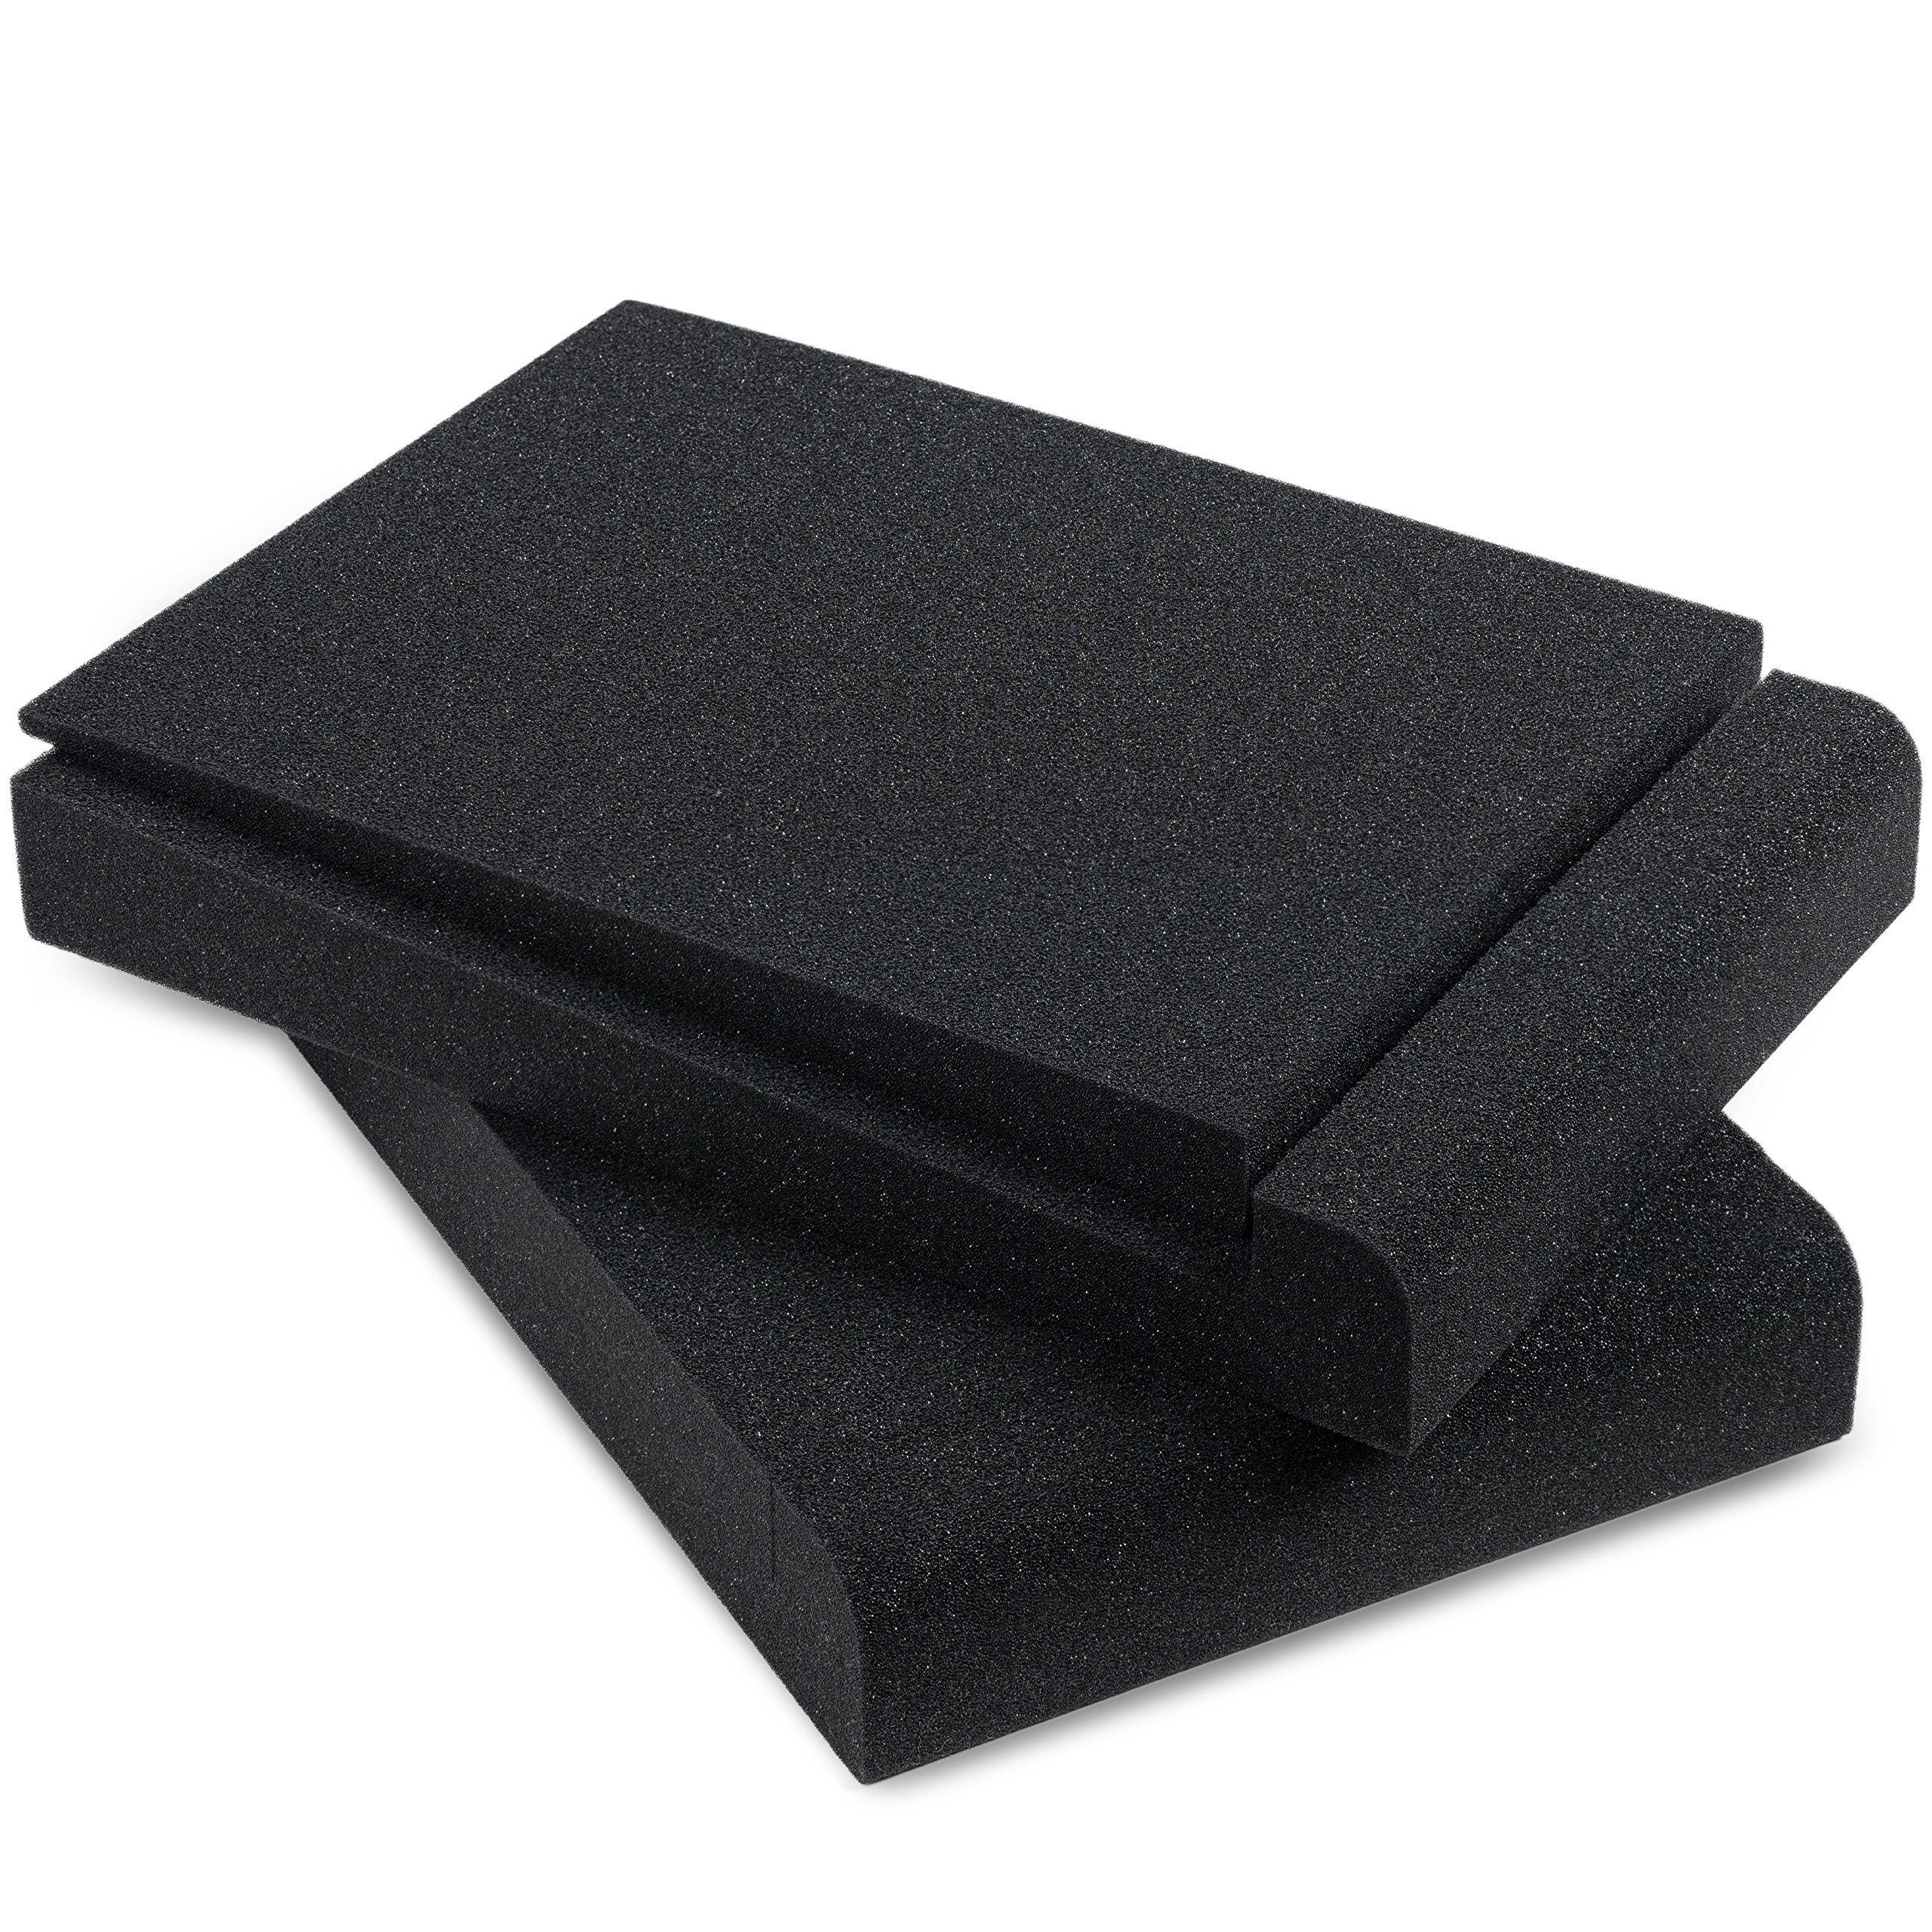 Sound Addicted - Studio Monitor Isolation Pads for 5'' Inch Monitors, Pair of Two High Density Acoustic Foam which Fits most Speaker Stands by Sound Addicted